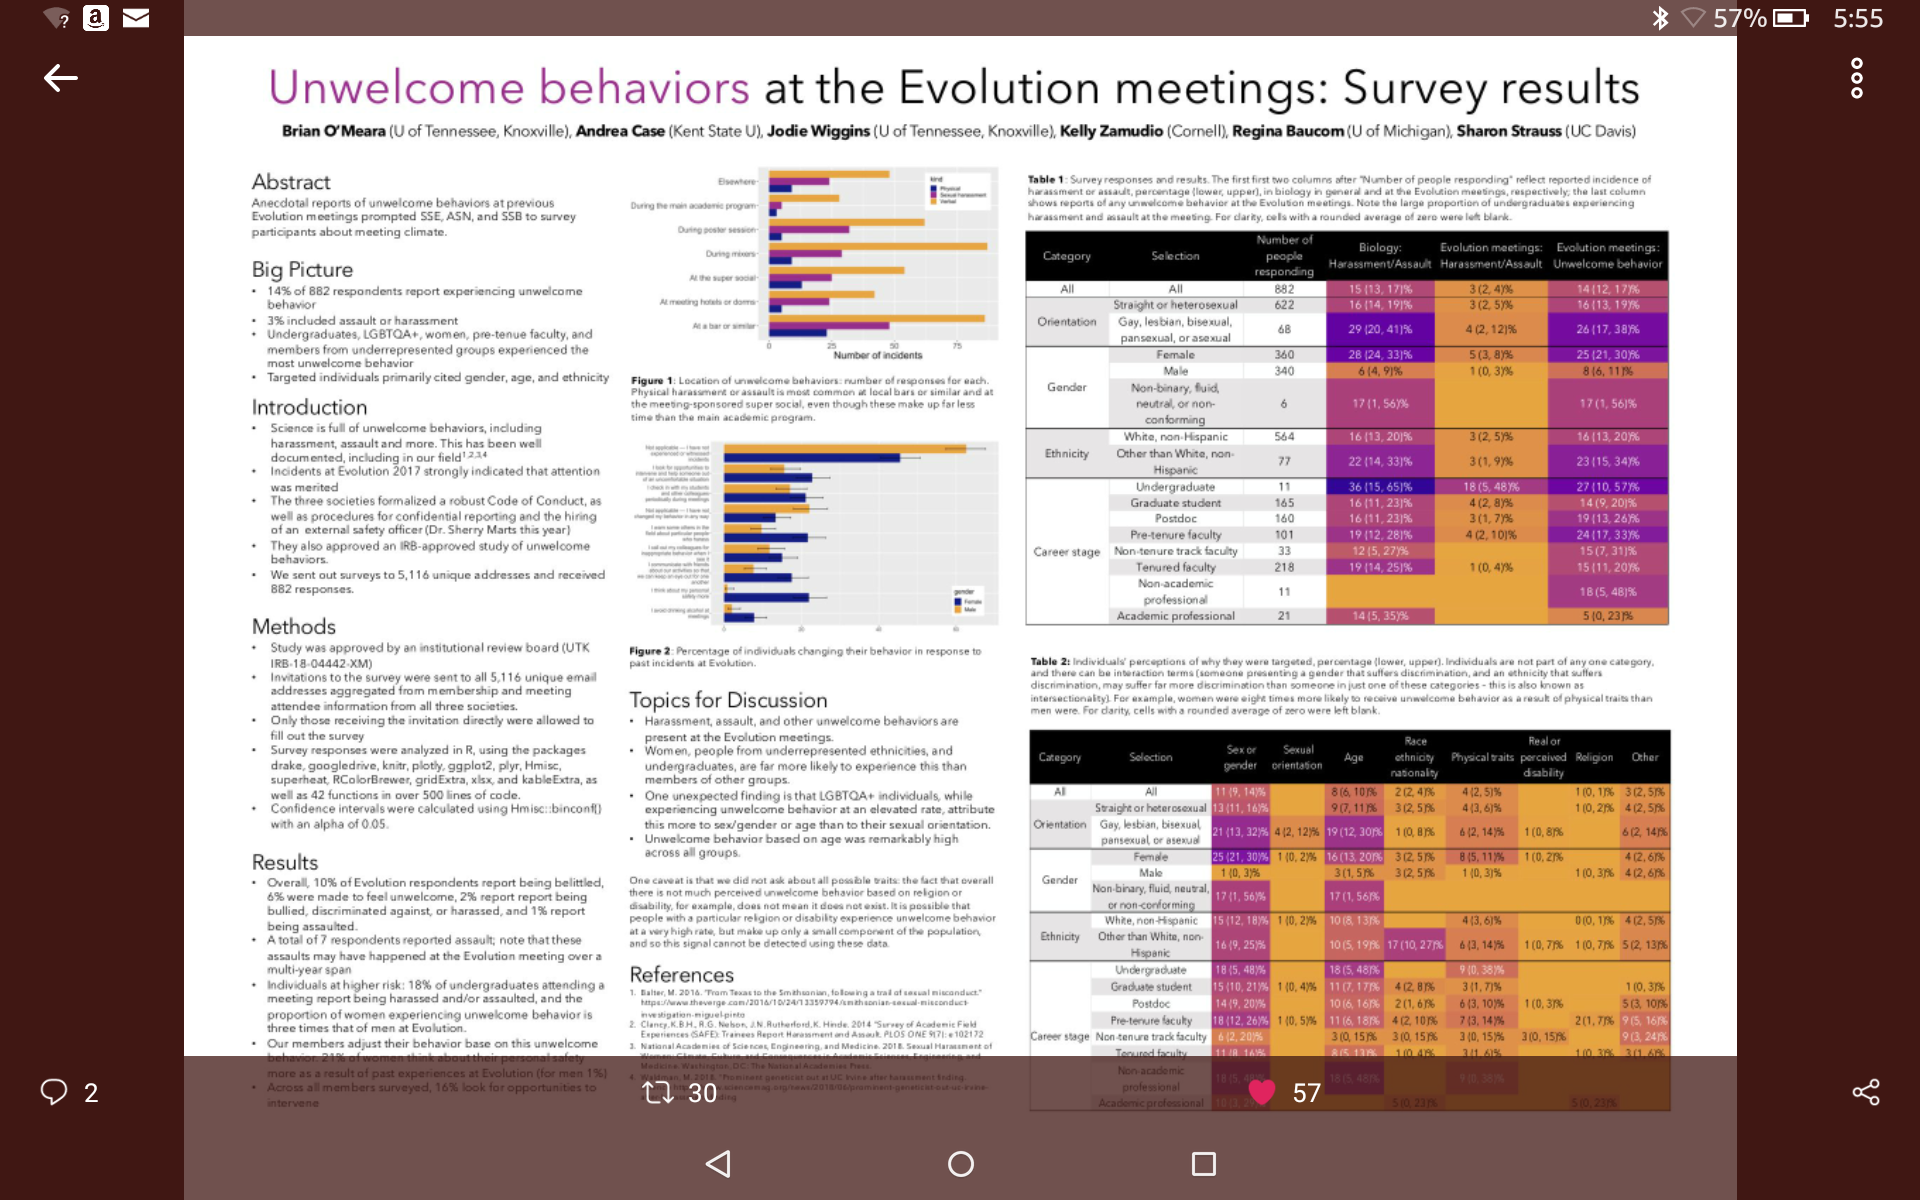 Survey results on unwelcome behaviors at the Evolution meetings presented during the poster session.